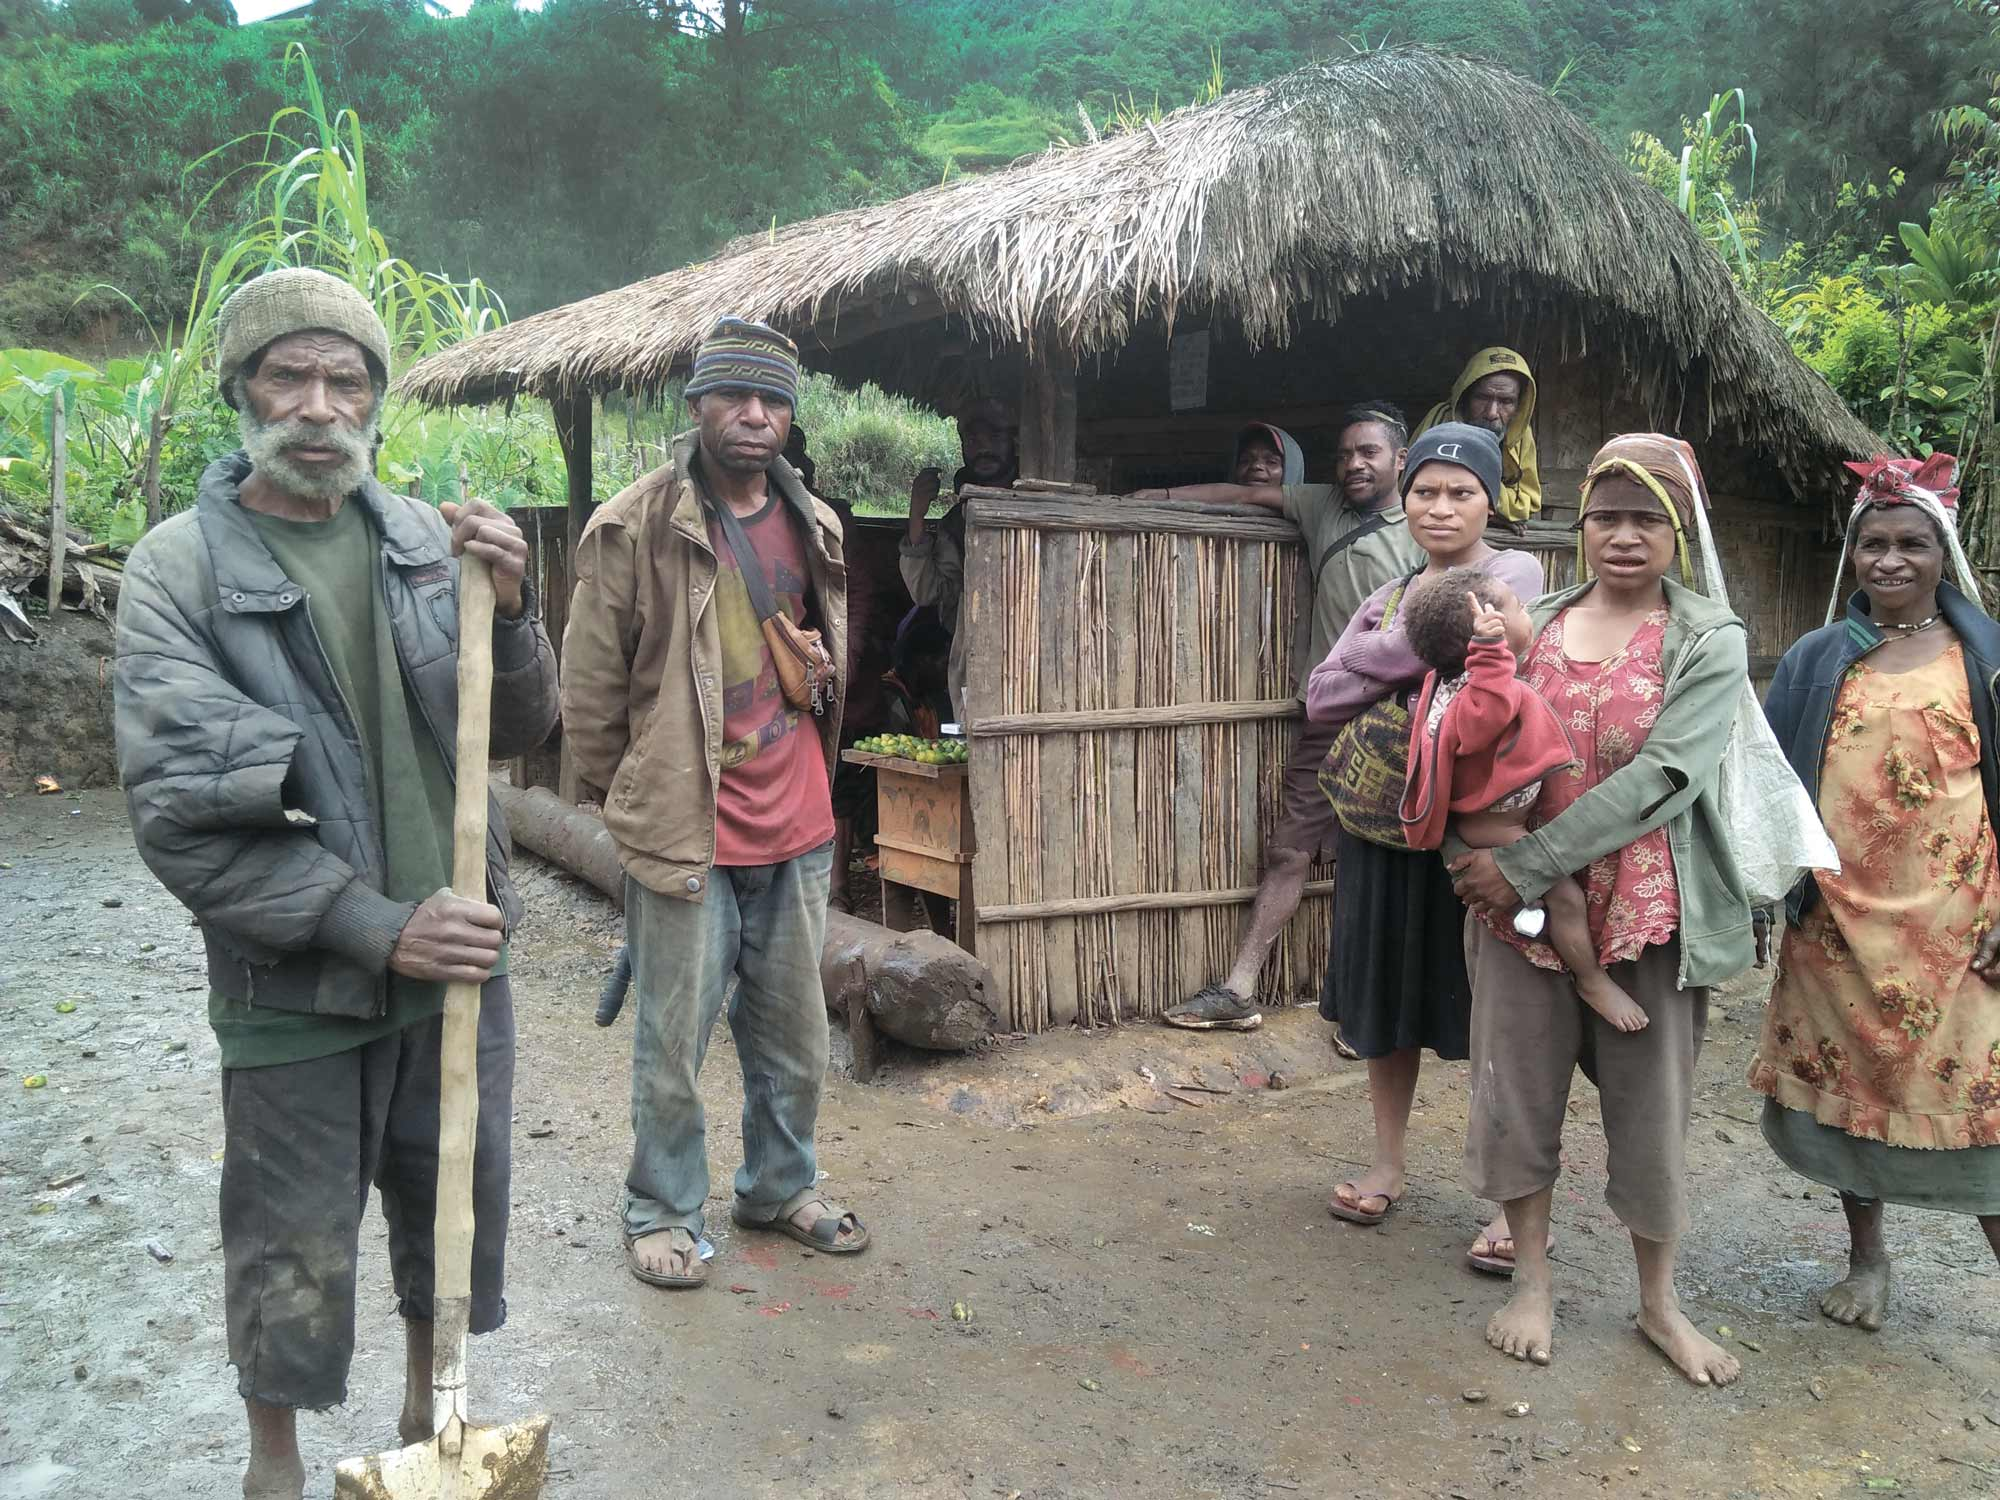 People in a remote village